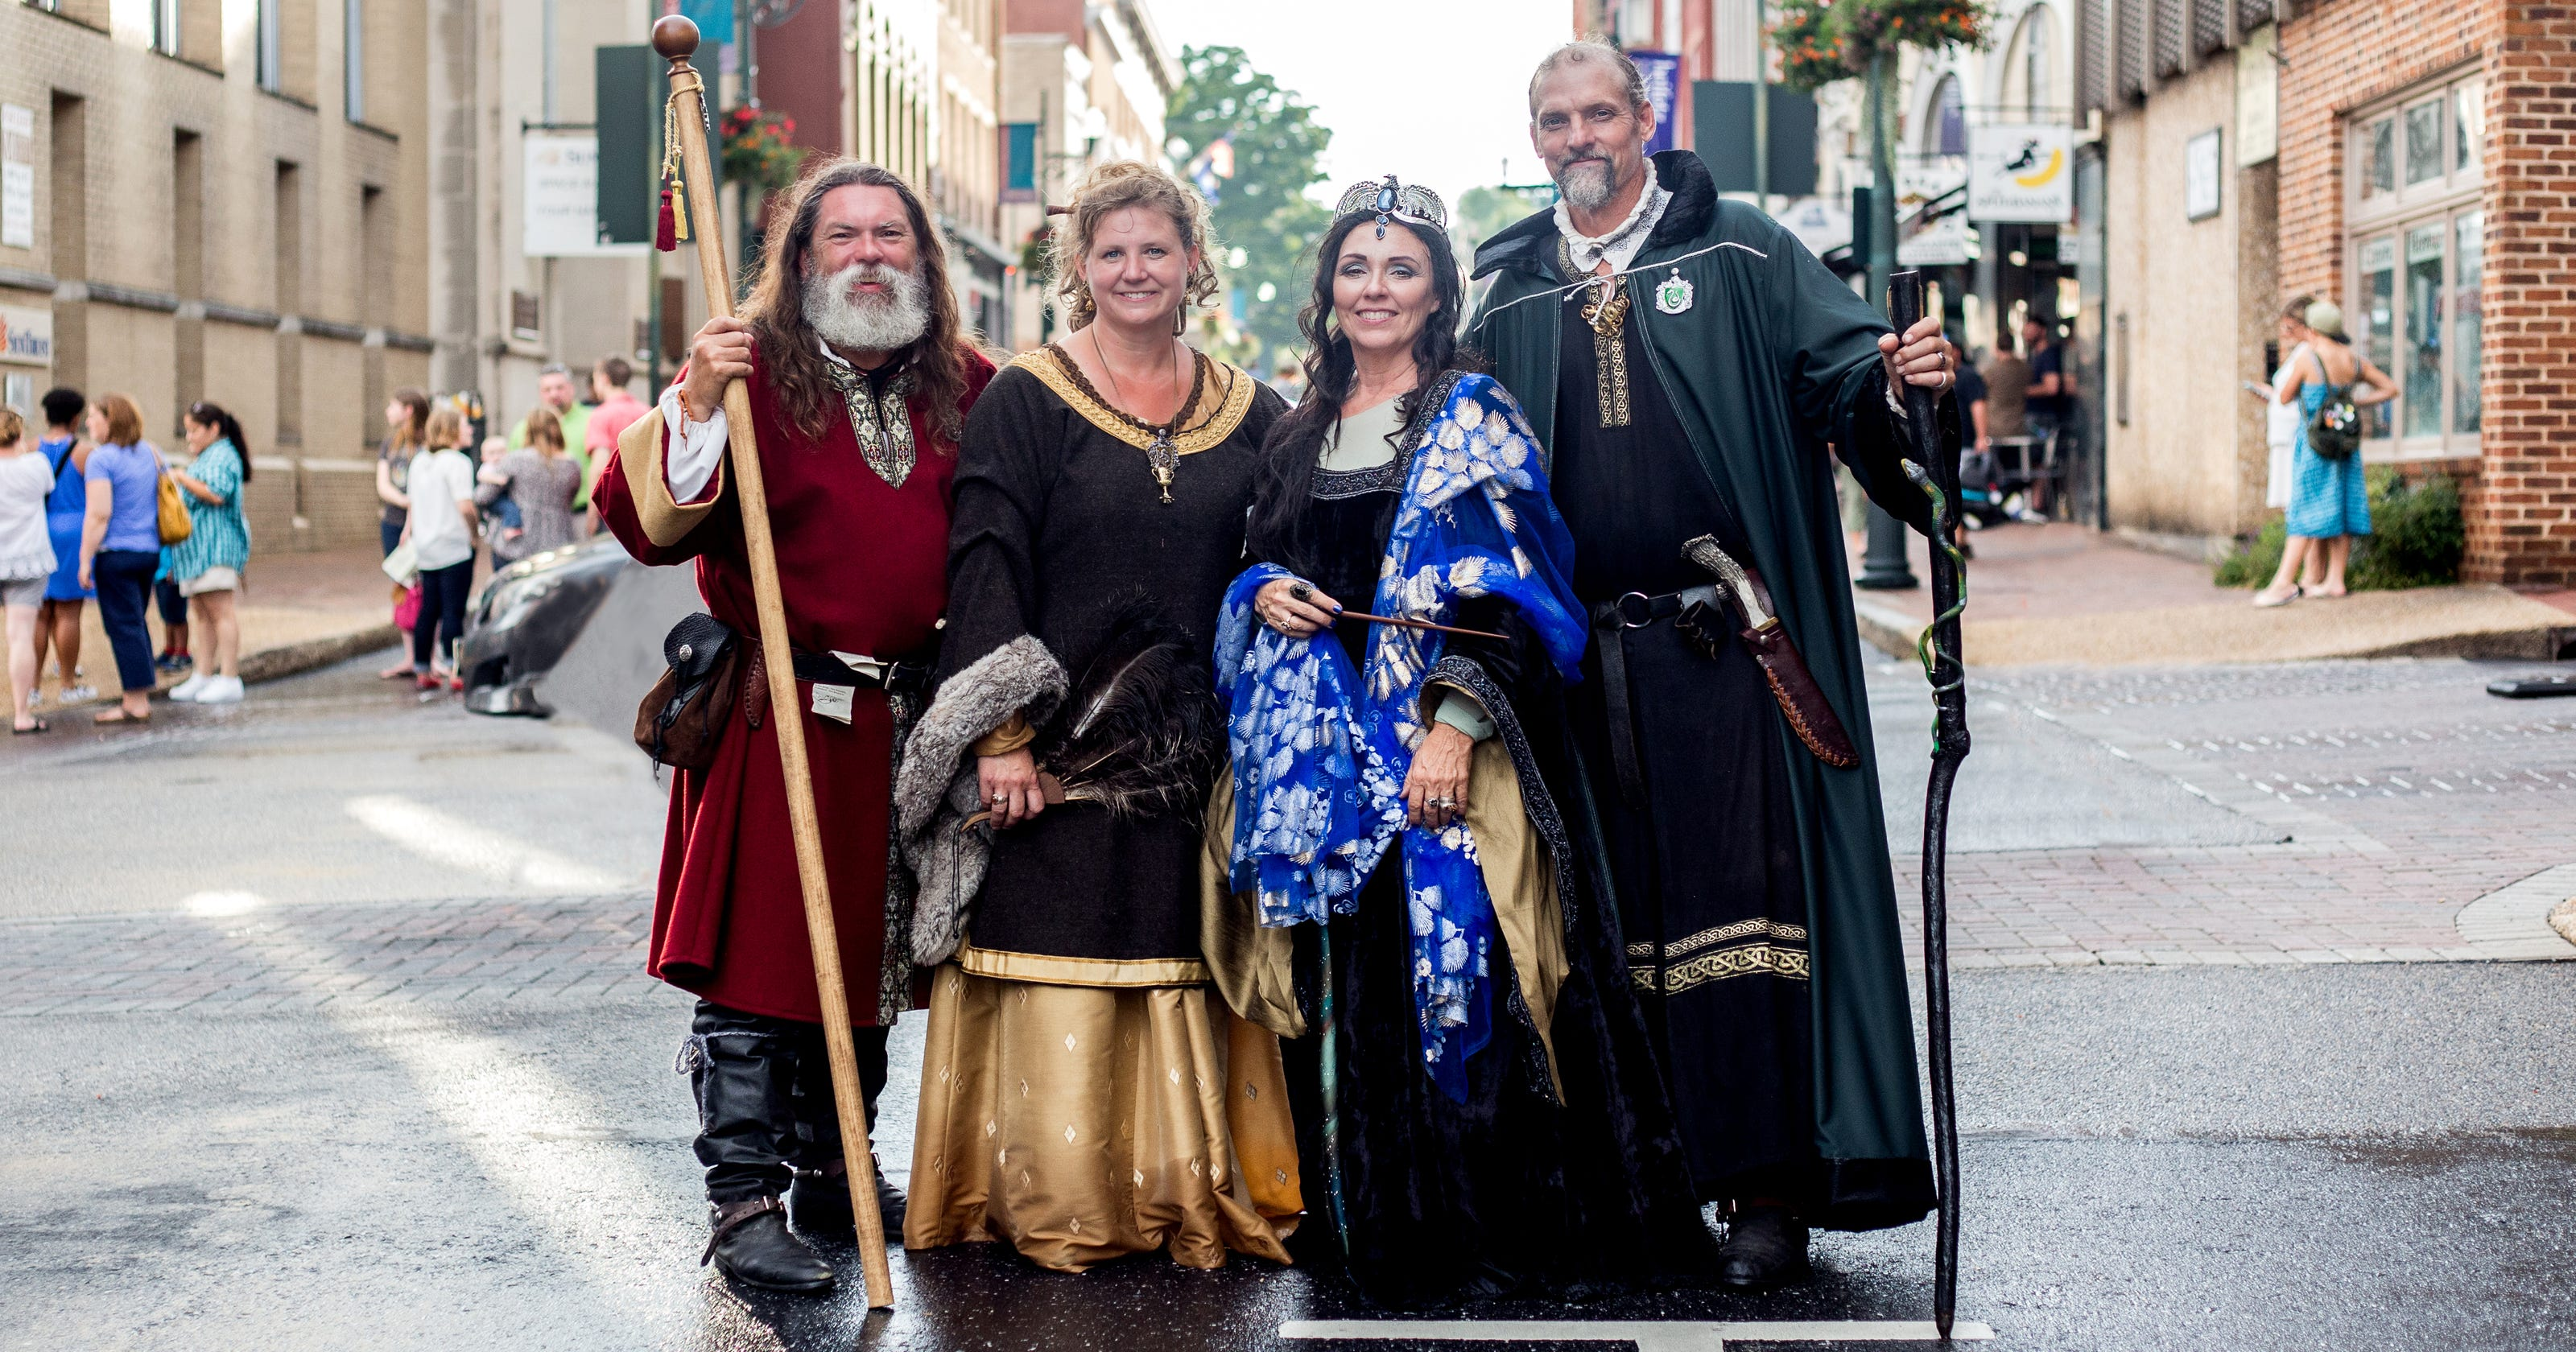 Staunton's Hogwarts Founders are life of Queen City ...